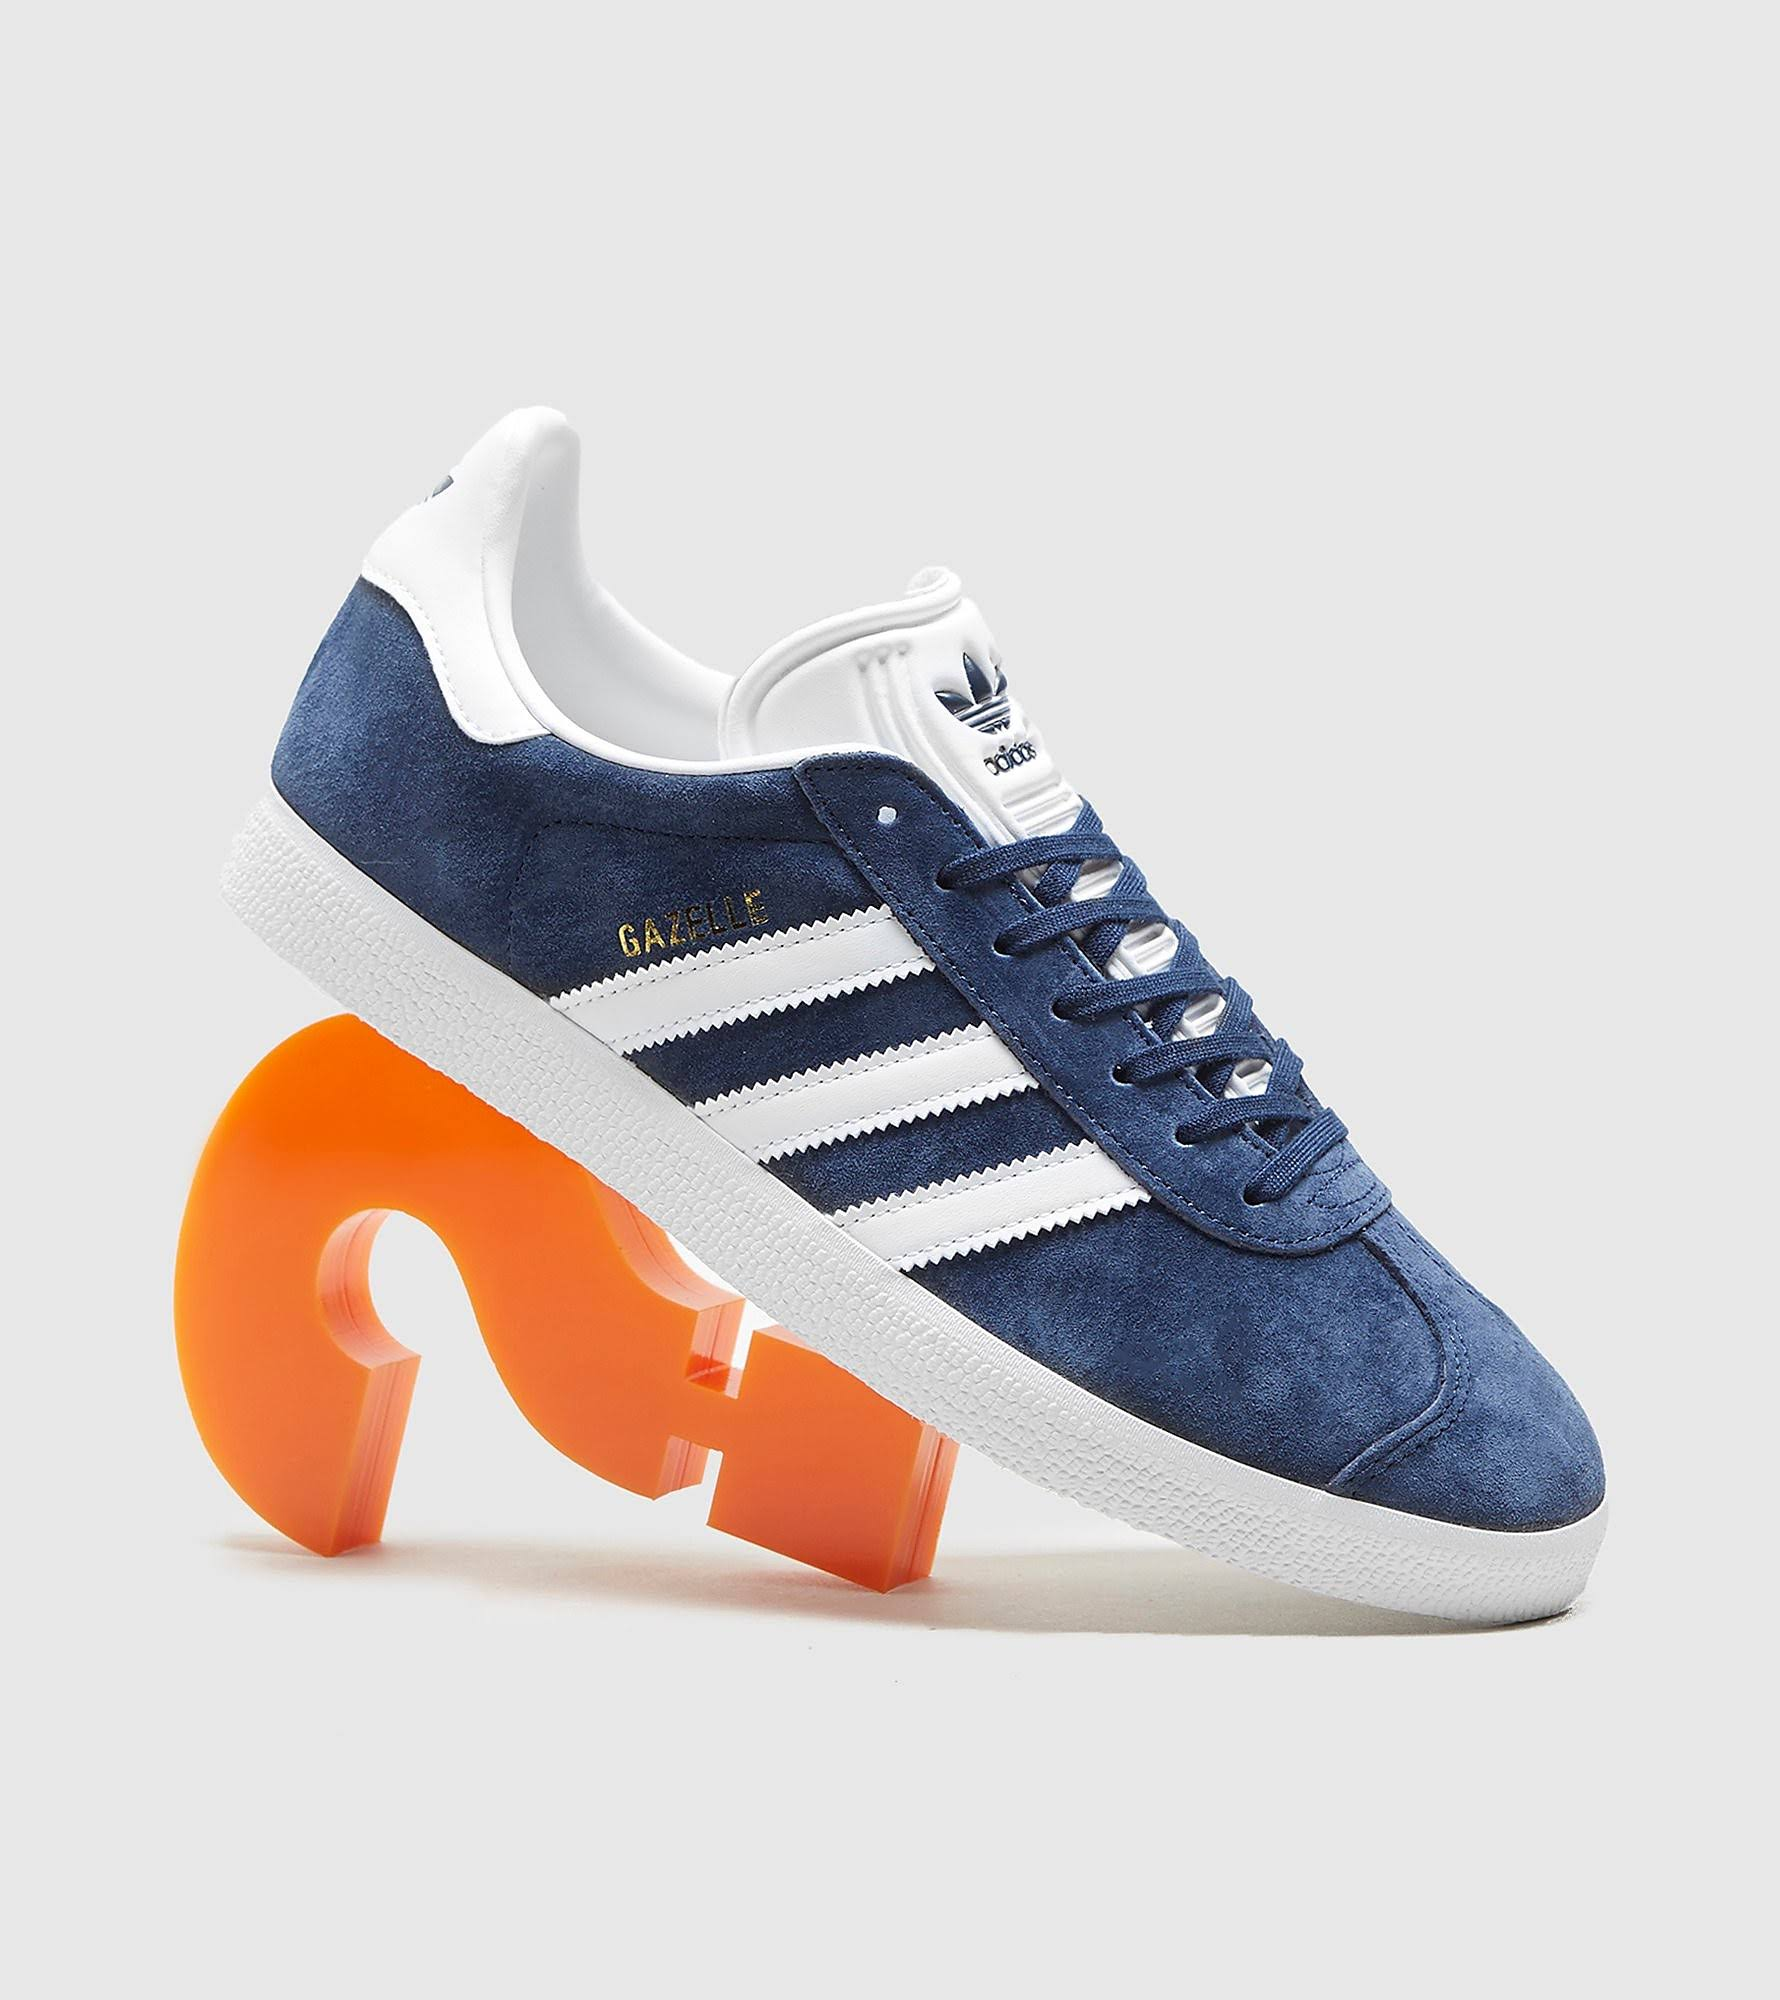 Adidas Originals 'Gazelle' Trainers - Navy